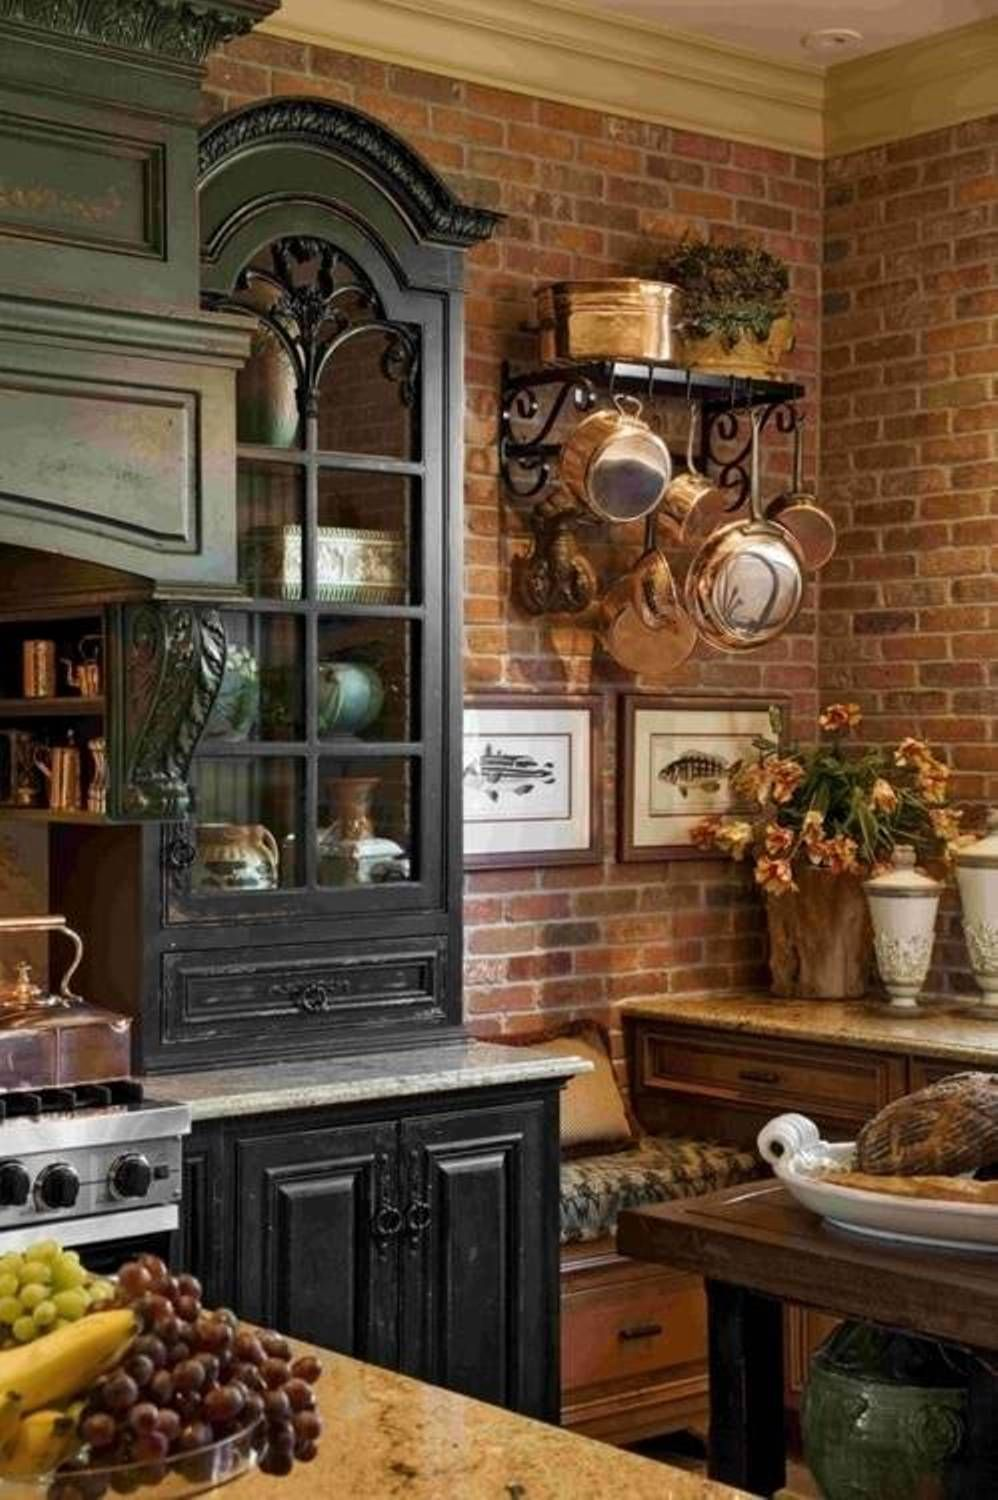 Rustic Kitchen Counter Decor Prepossessing Kitchen Counter Decor Pix  Kitchen Counter Stools With Backs Inspiration Design